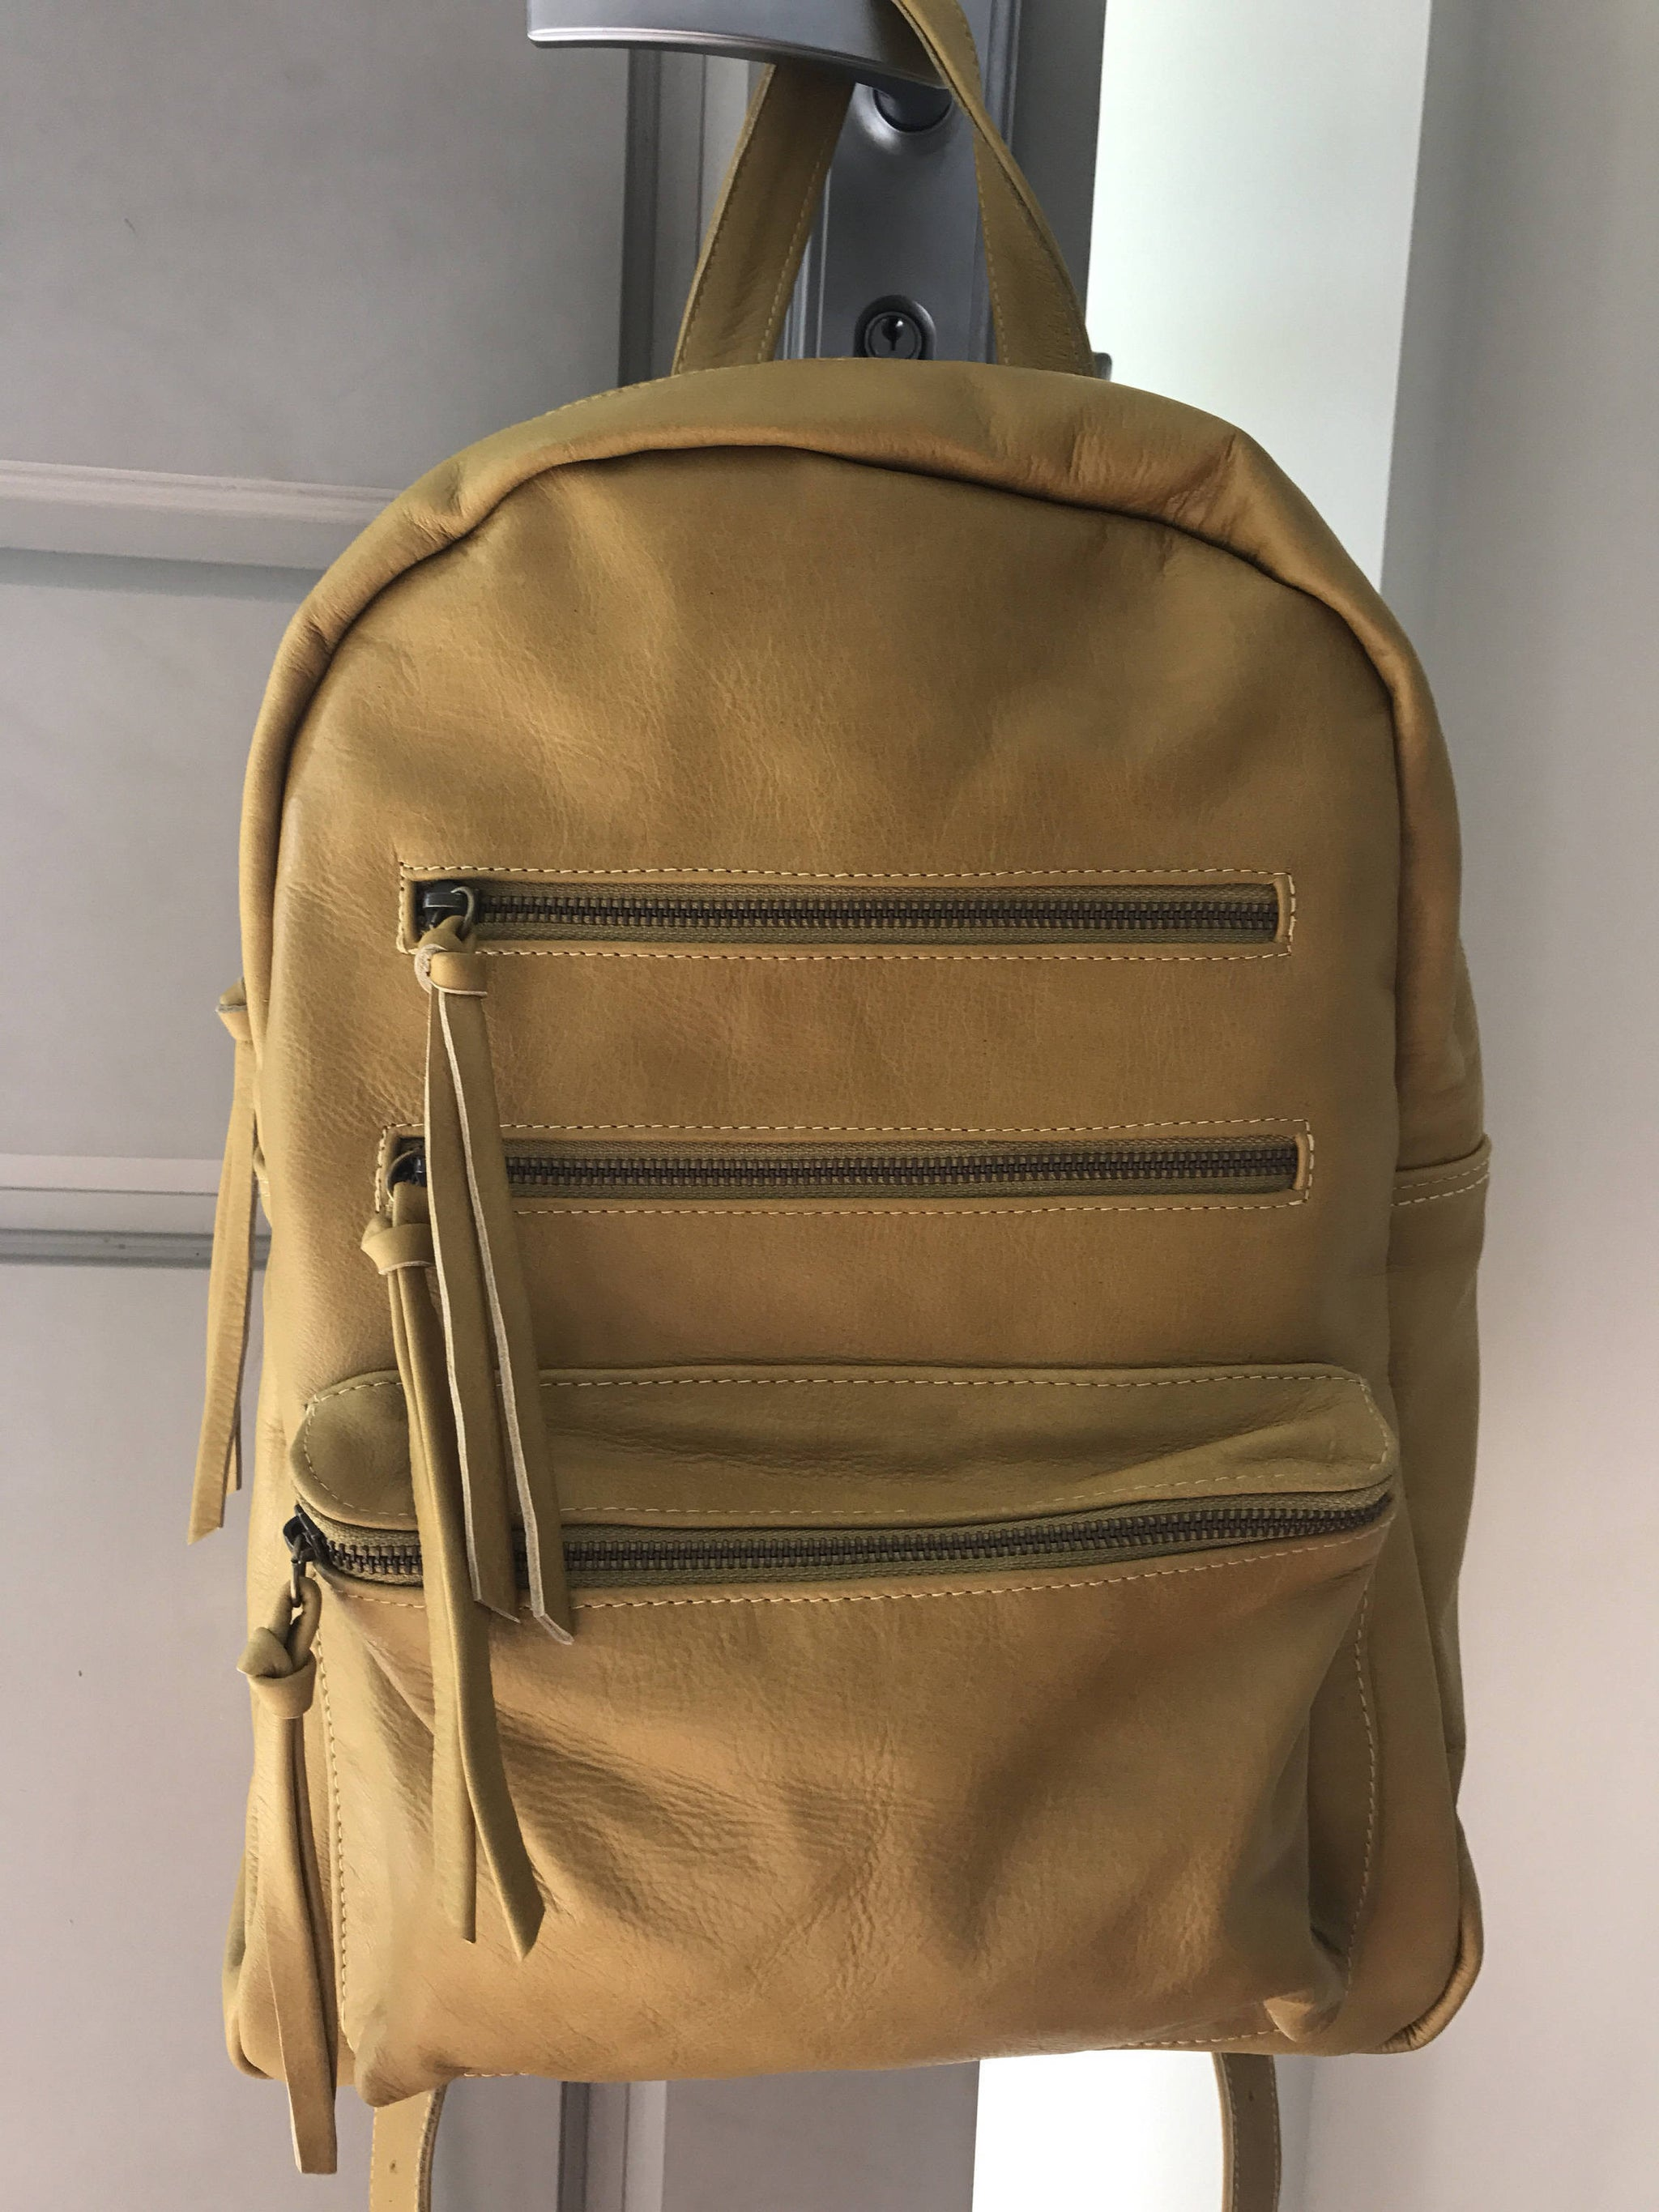 The Koda Backpack - Leather backpack handmade and able to be customised.